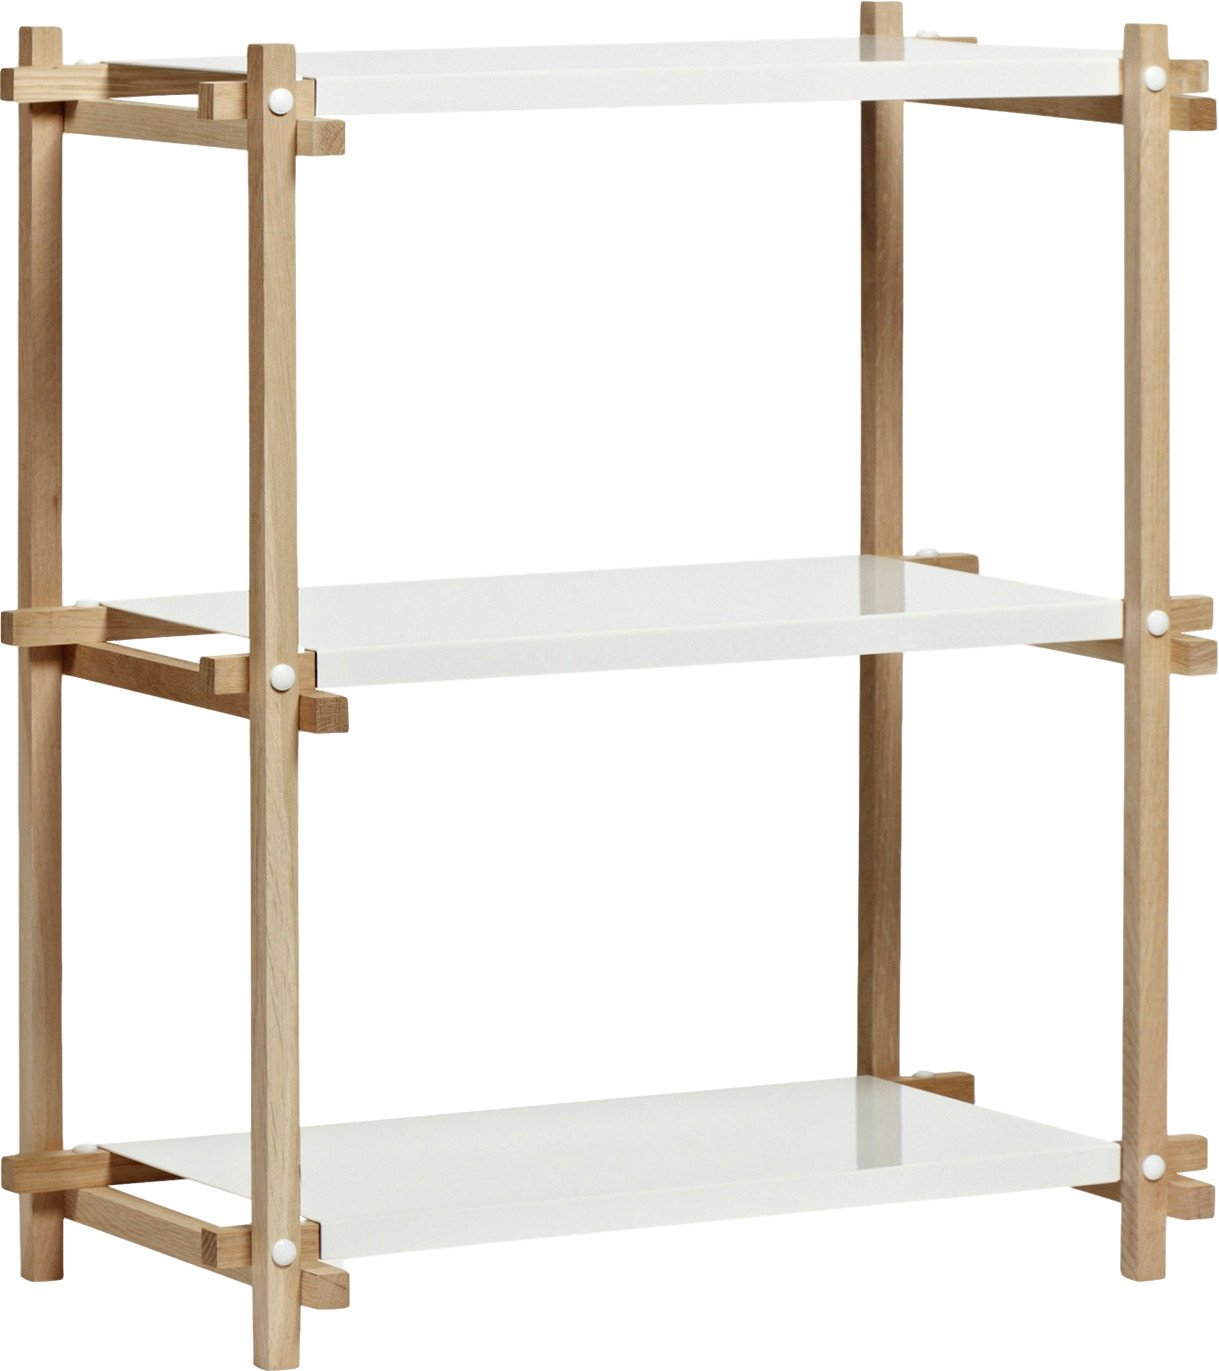 Woody Column Bookcase Low, HAY - 494000 - photo